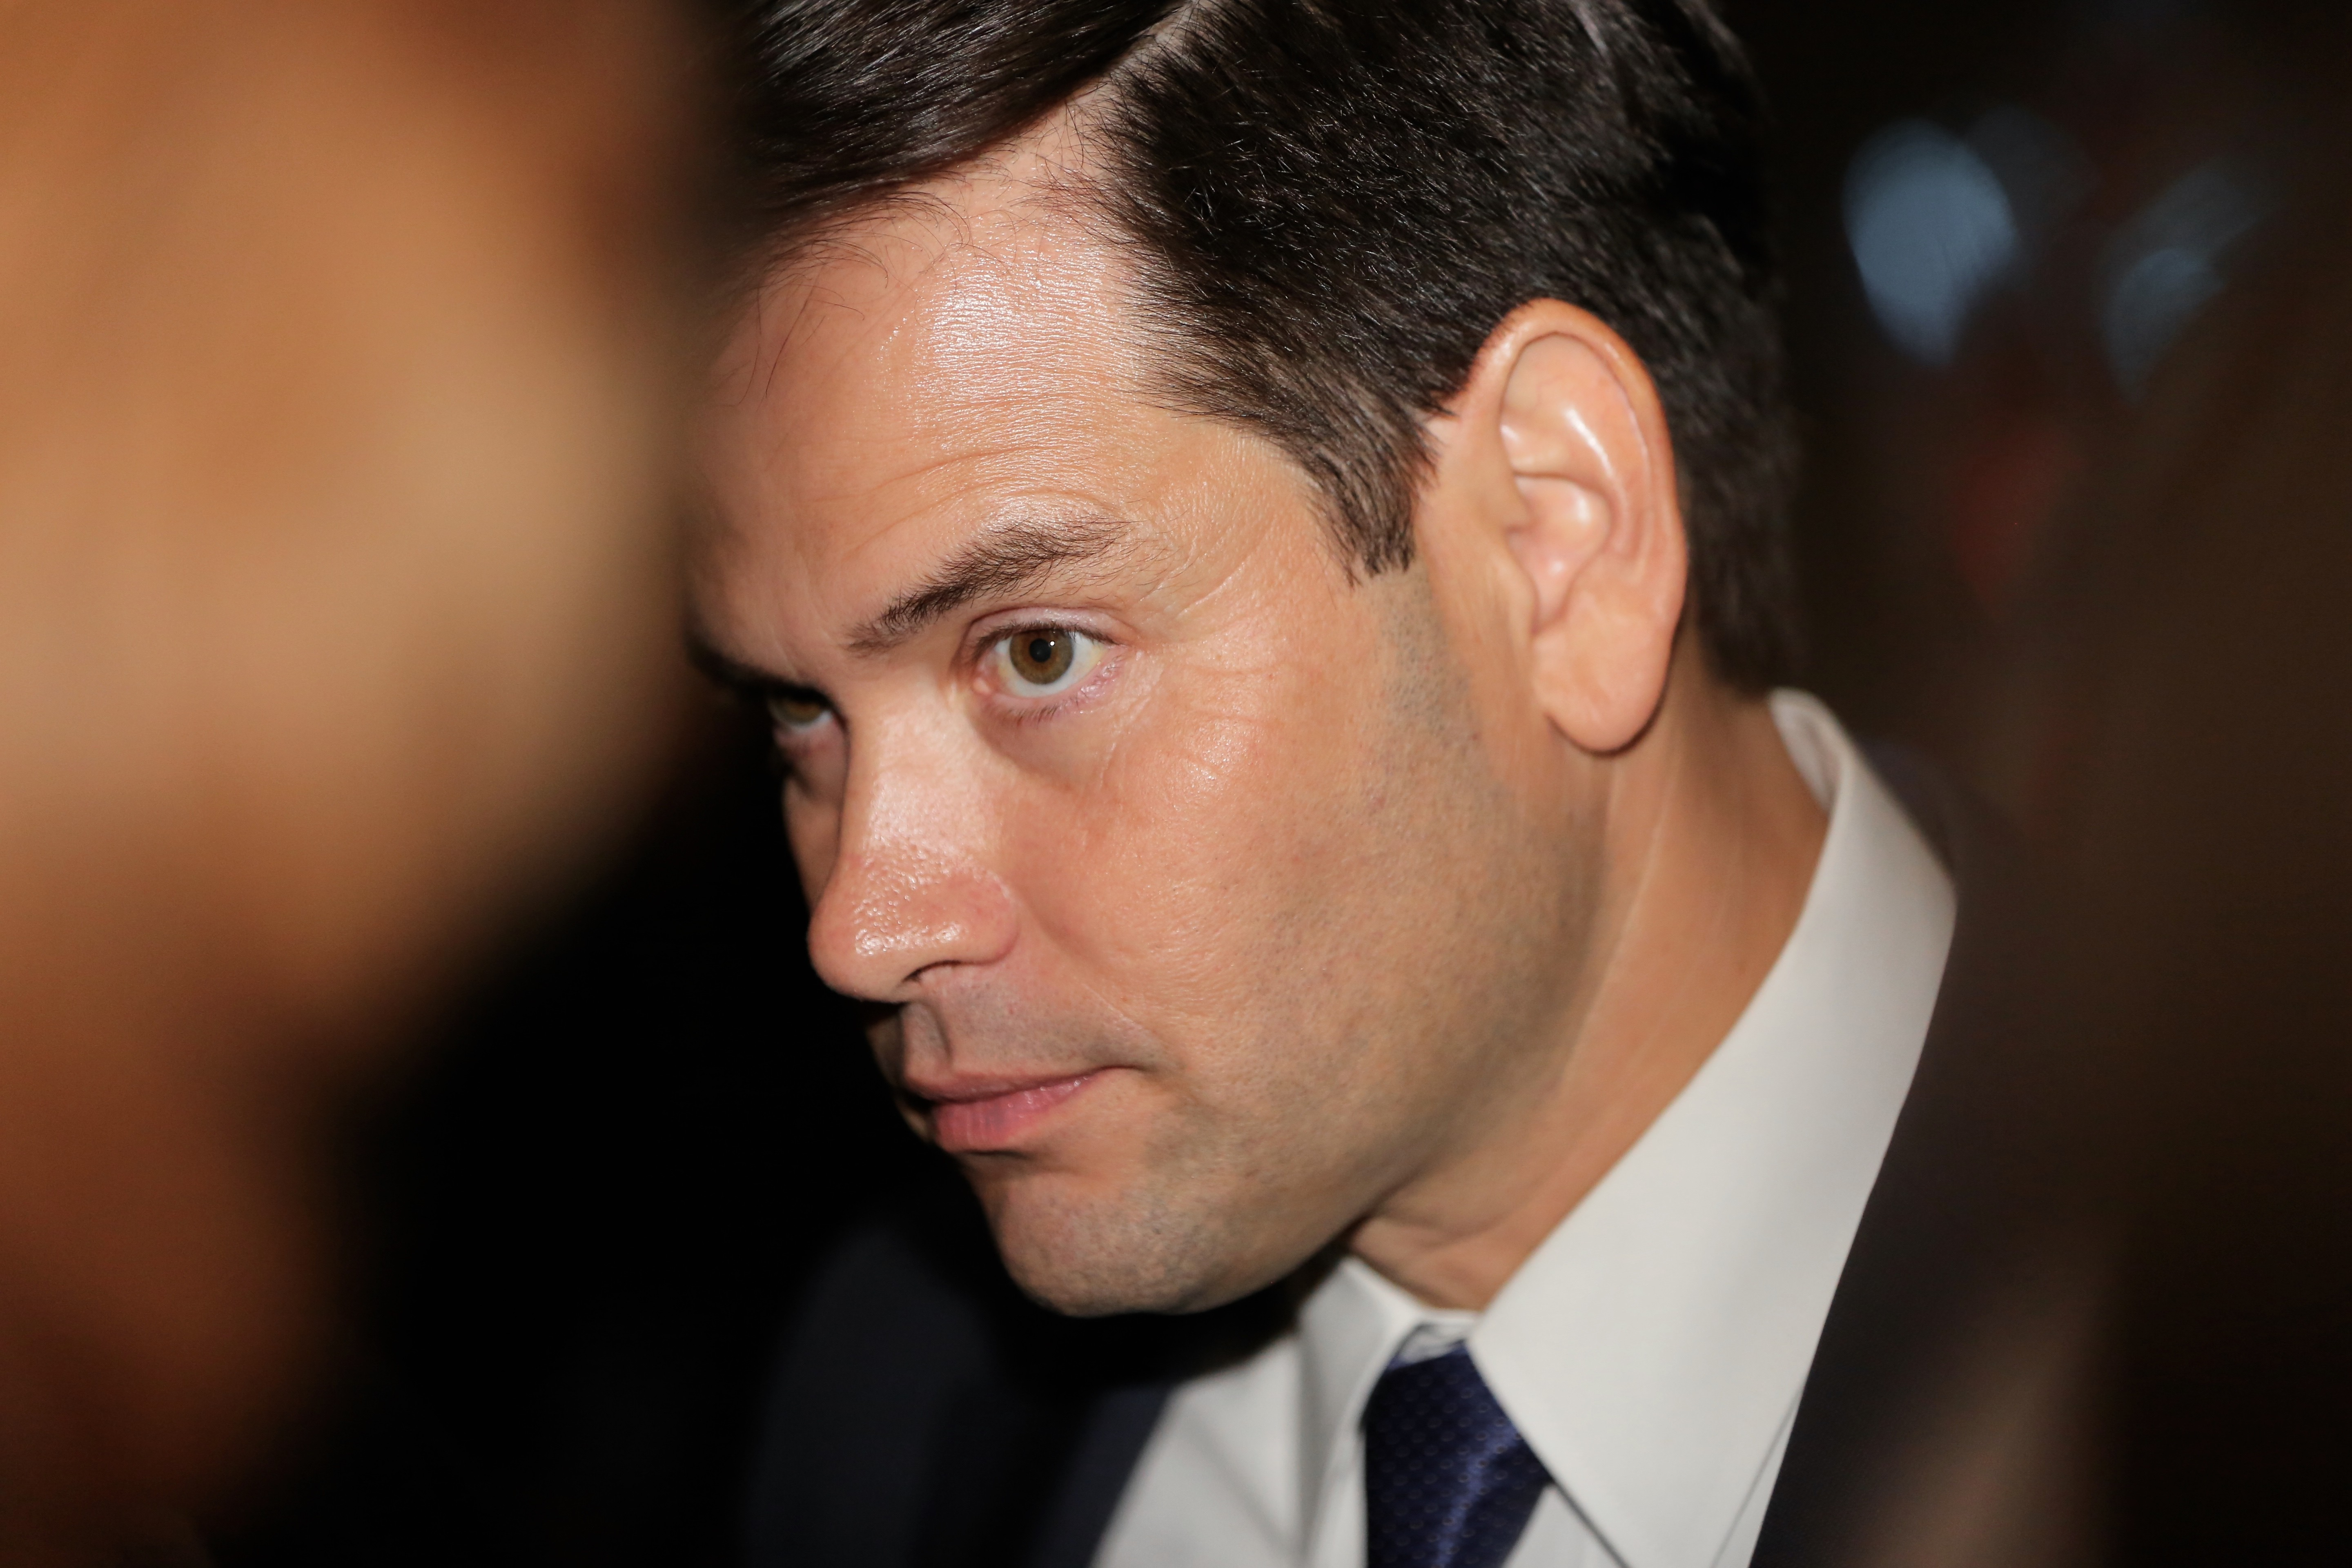 rubio asks followers to vote for rick scott after promise not to